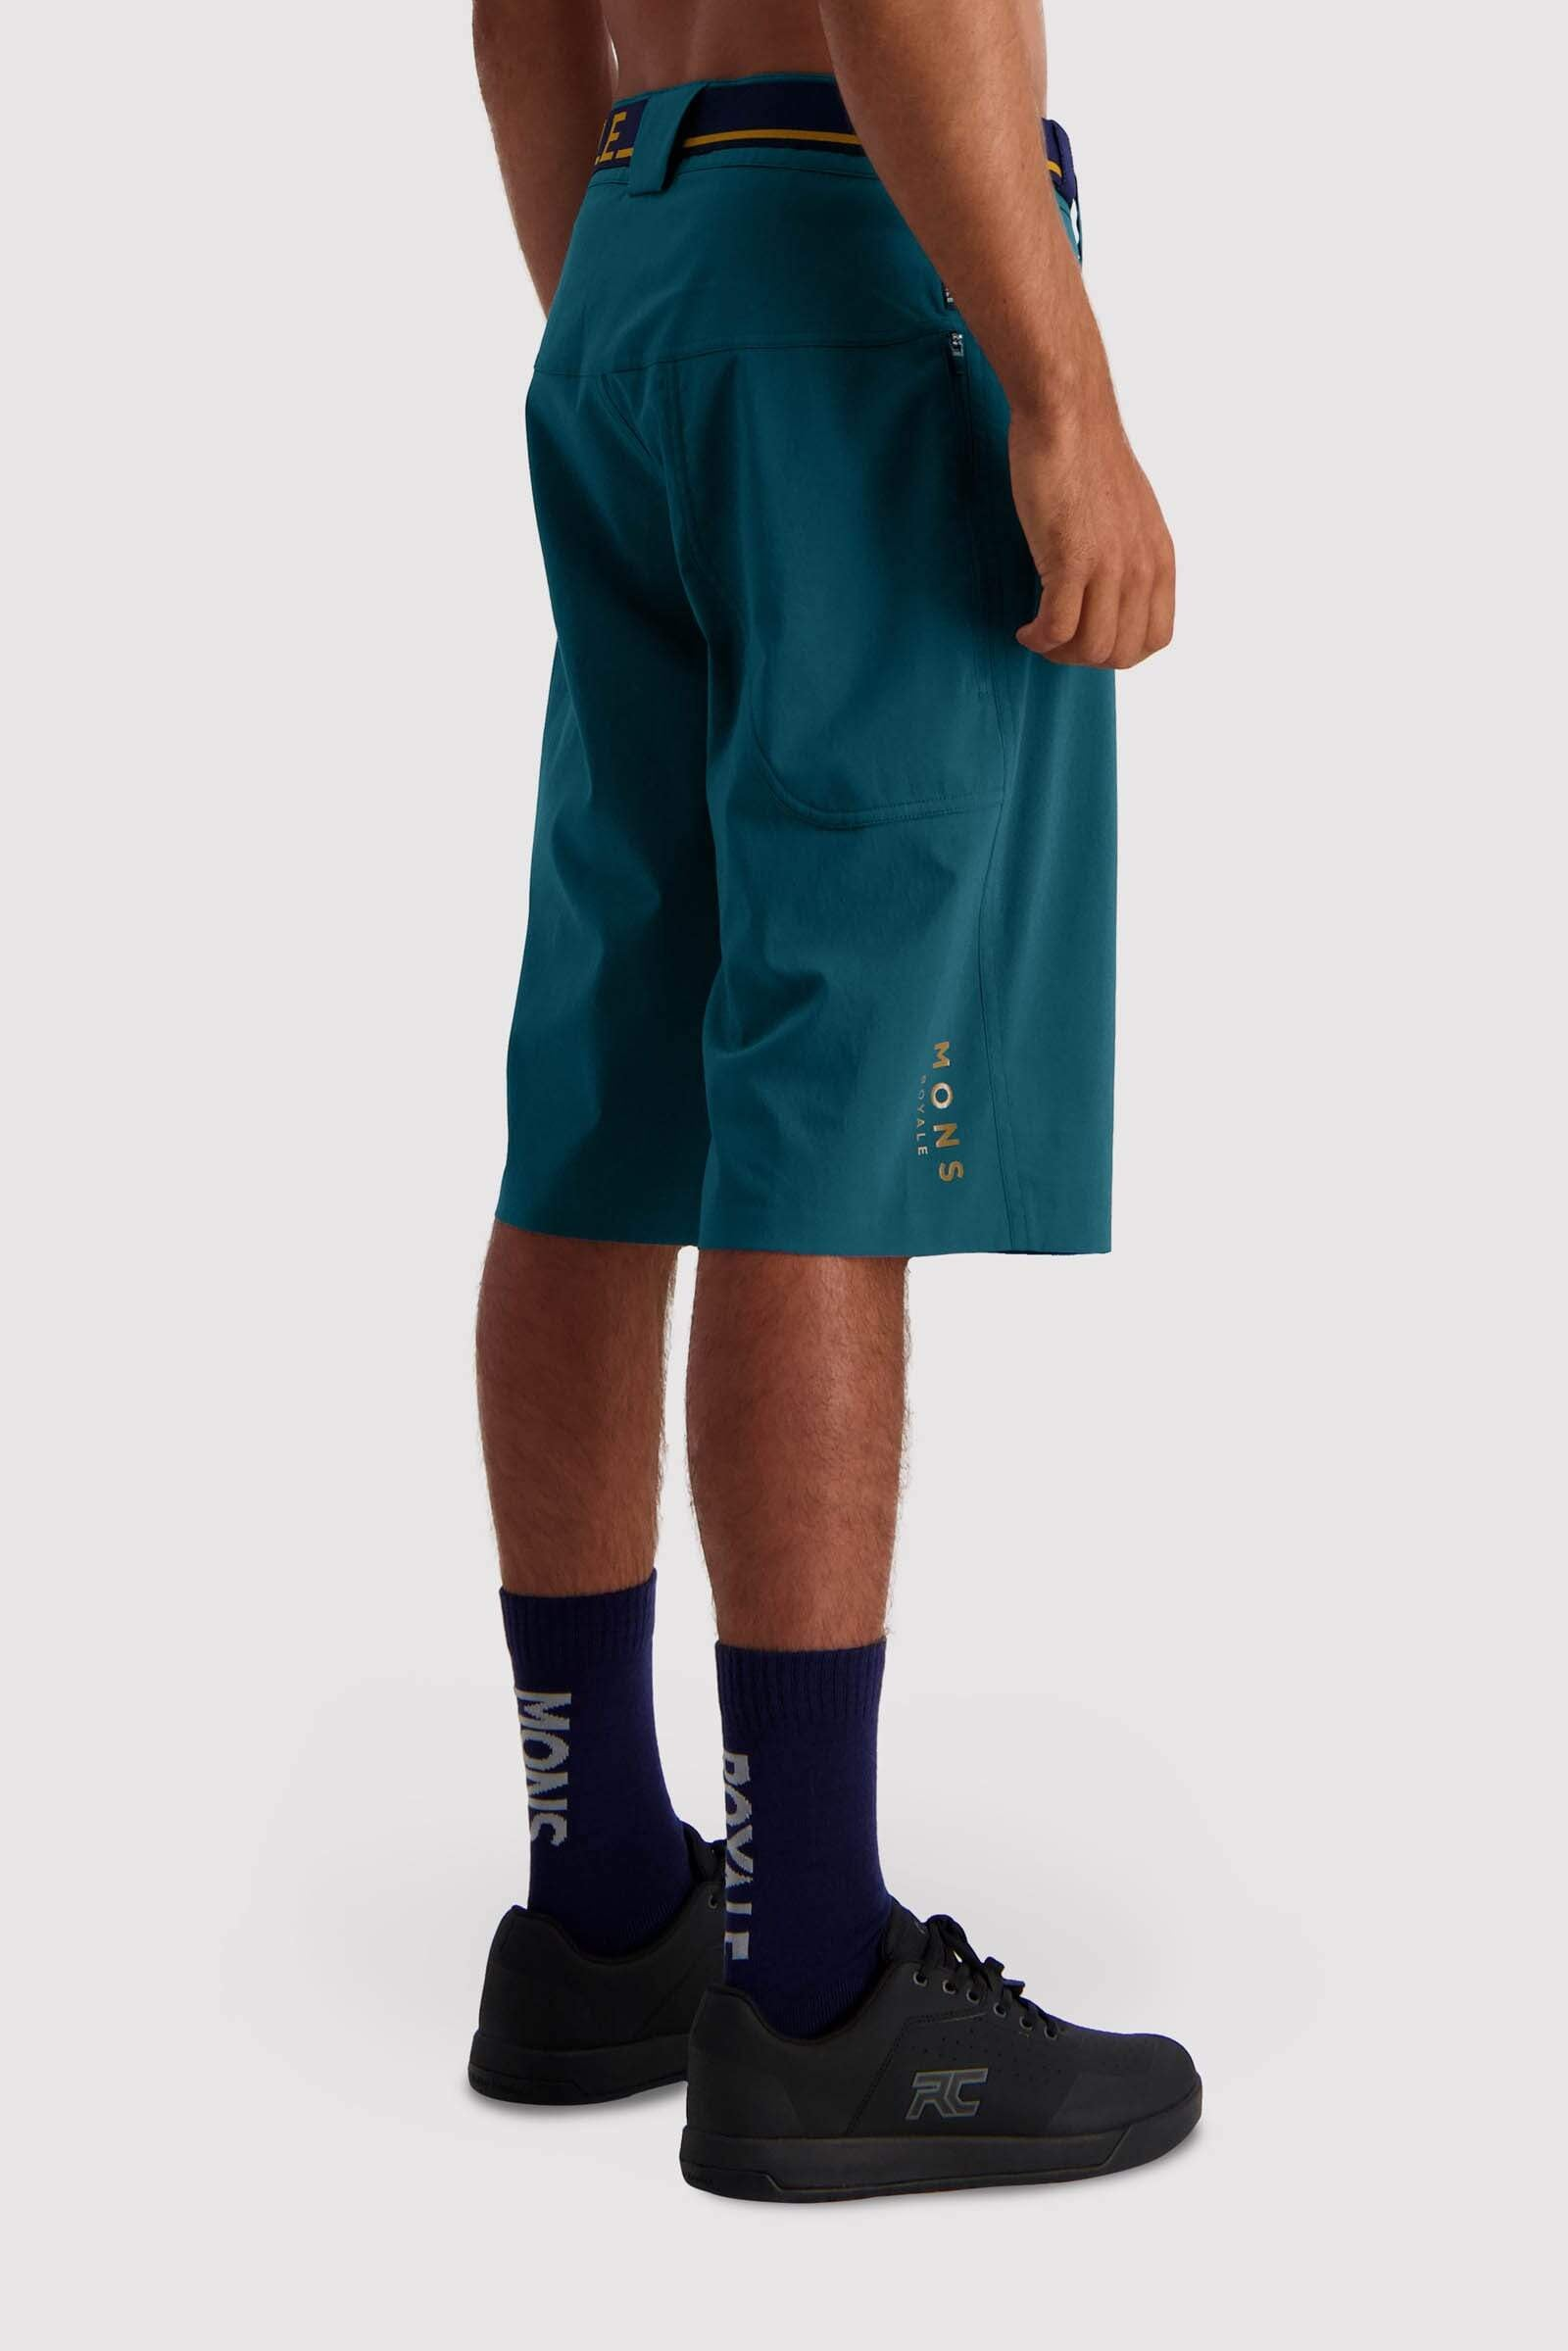 Virage Bike Shorts - Deep Teal